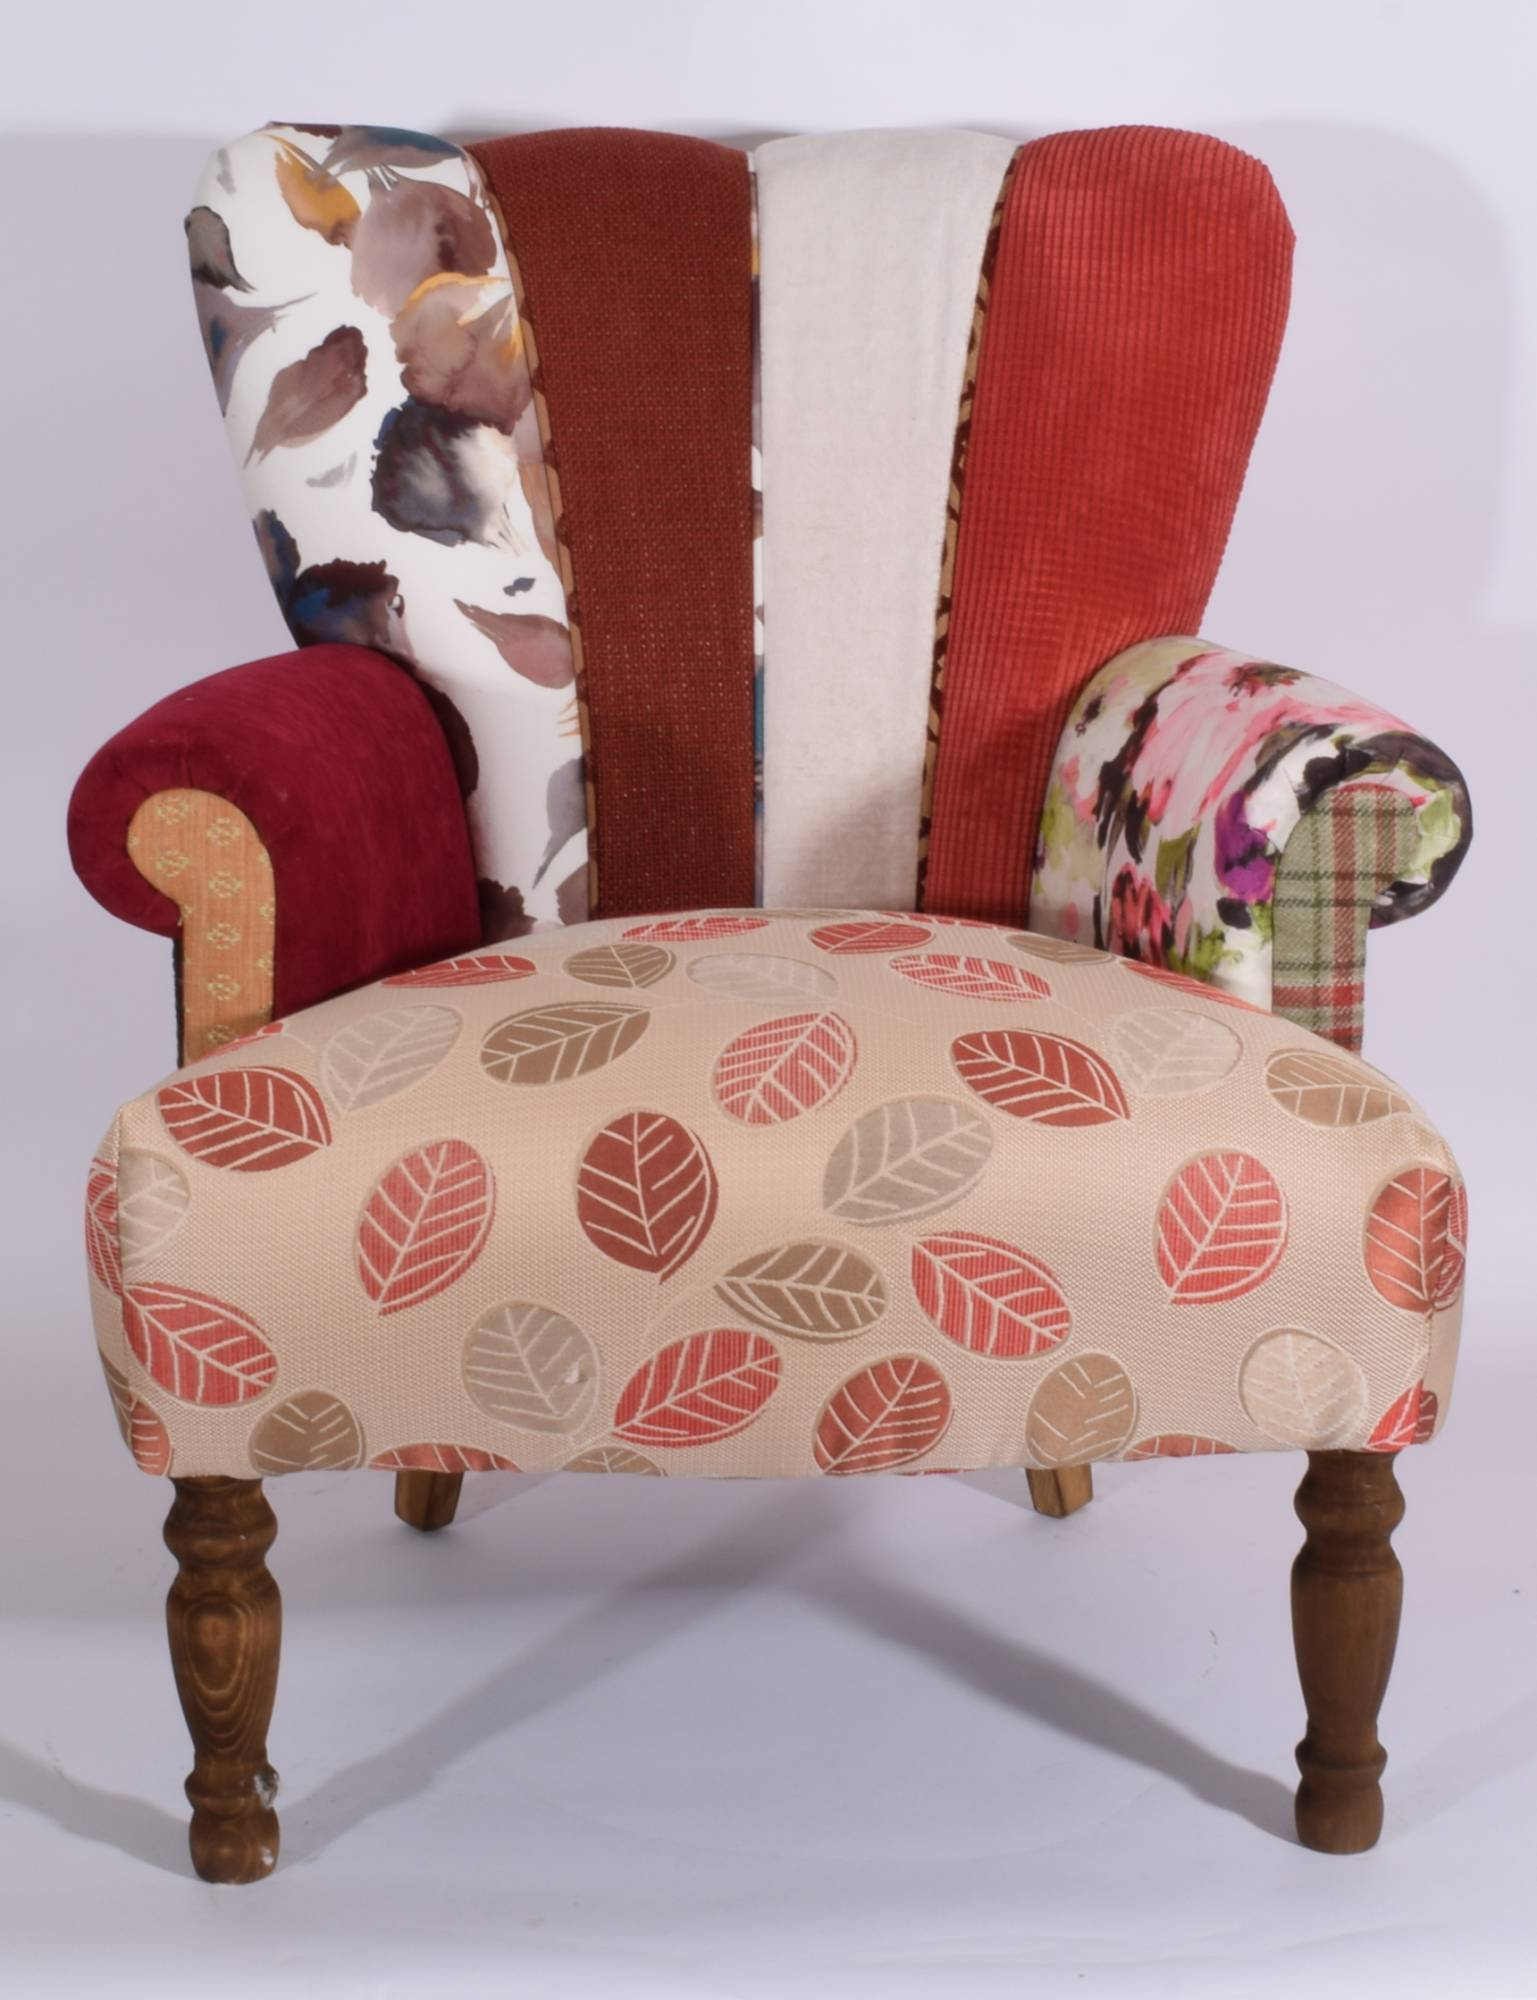 Quirky harlequin chair 241 bedroom furniture for Quirky furniture